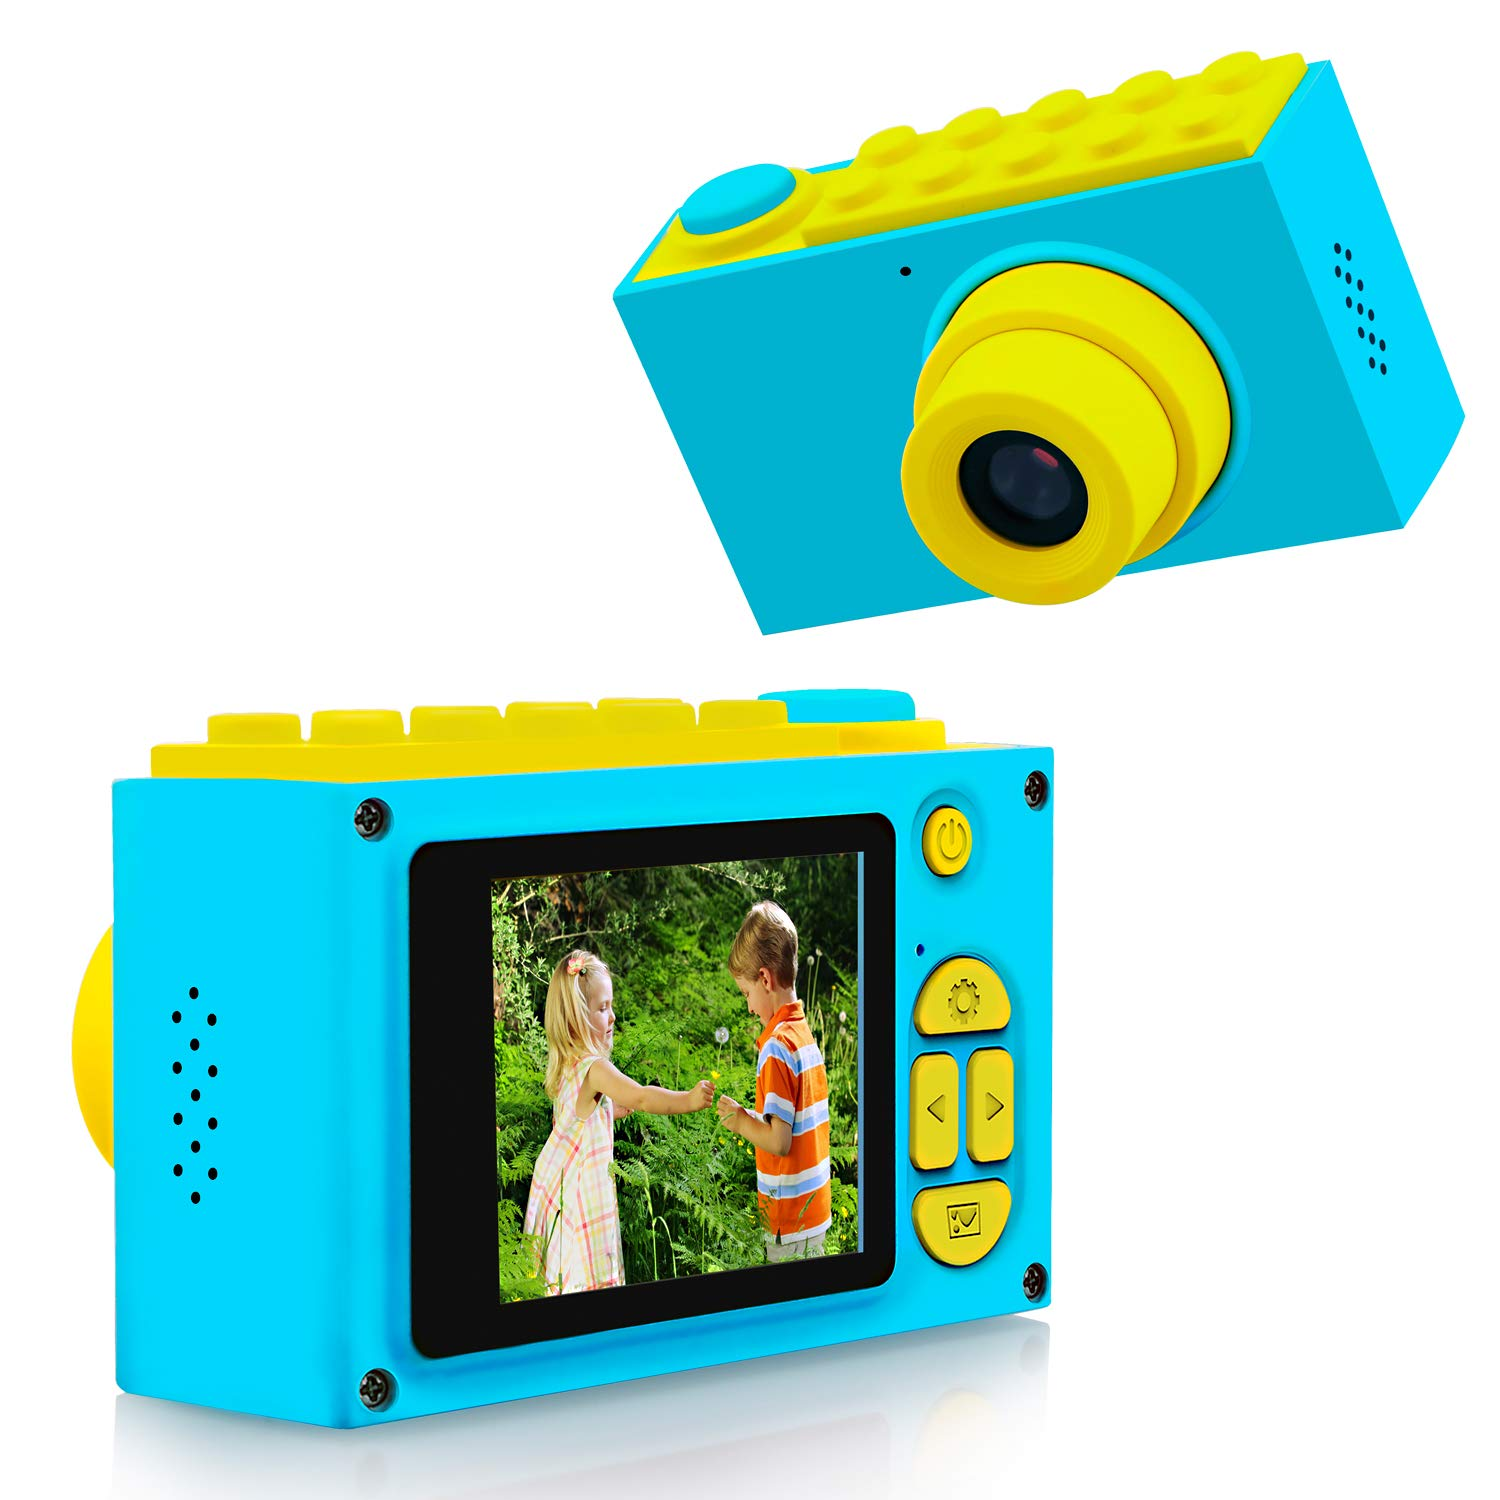 TURN RAISE Kids Digital Camera Mini 2 Inch Screen Children's Camera with Memory Card (Upgraded Version Pink)